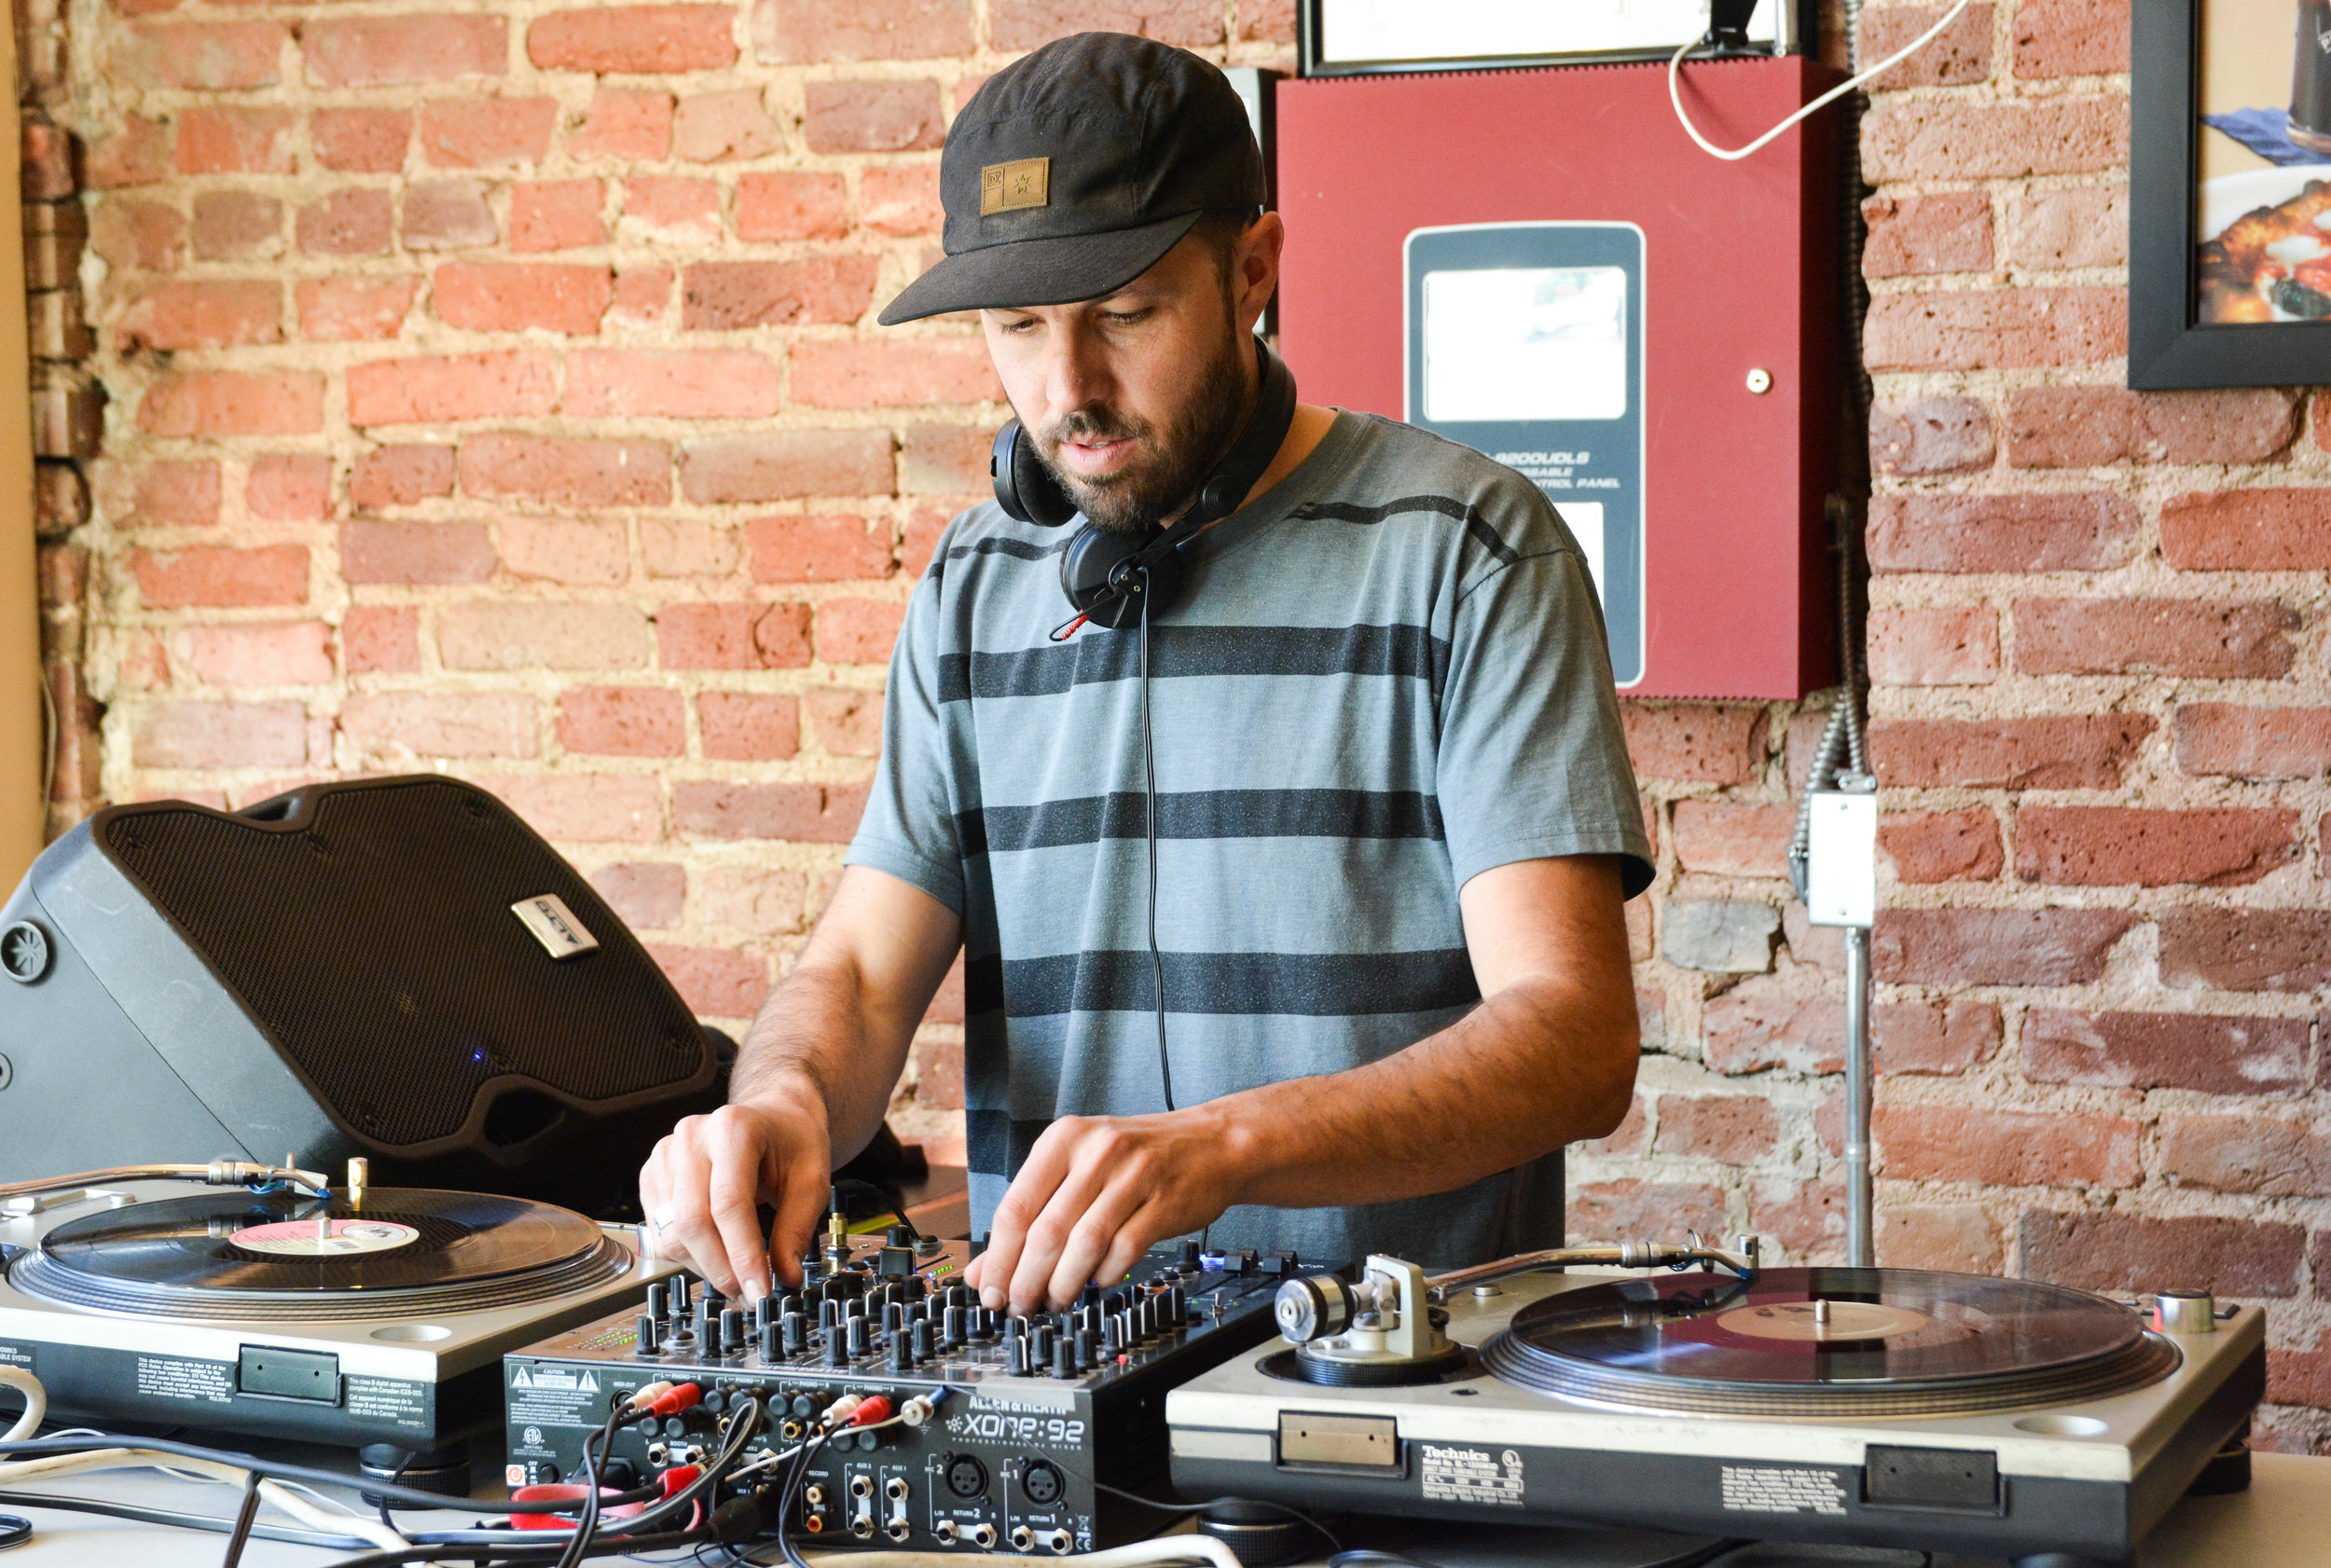 Beats & Brunch - Saturdays 11 - 3pm